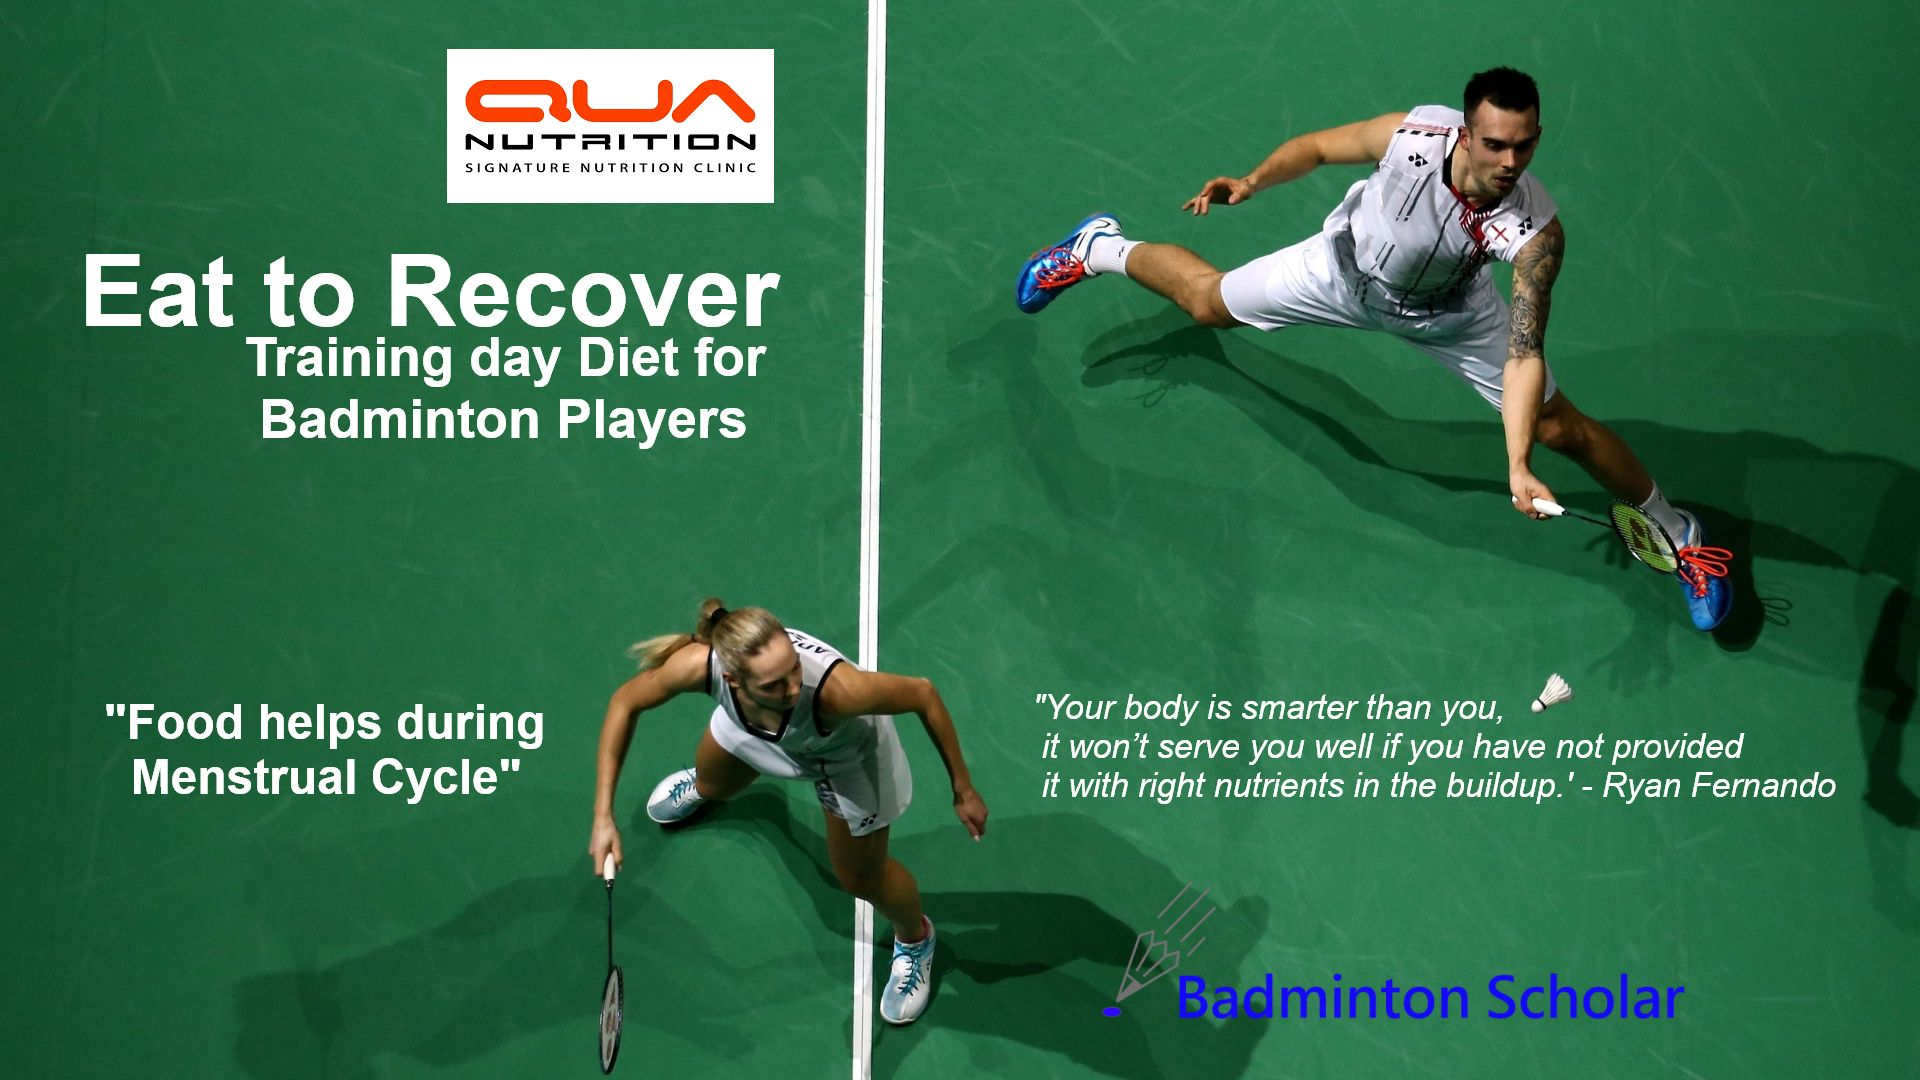 Eat to Recover - Training day diet for Badminton Players